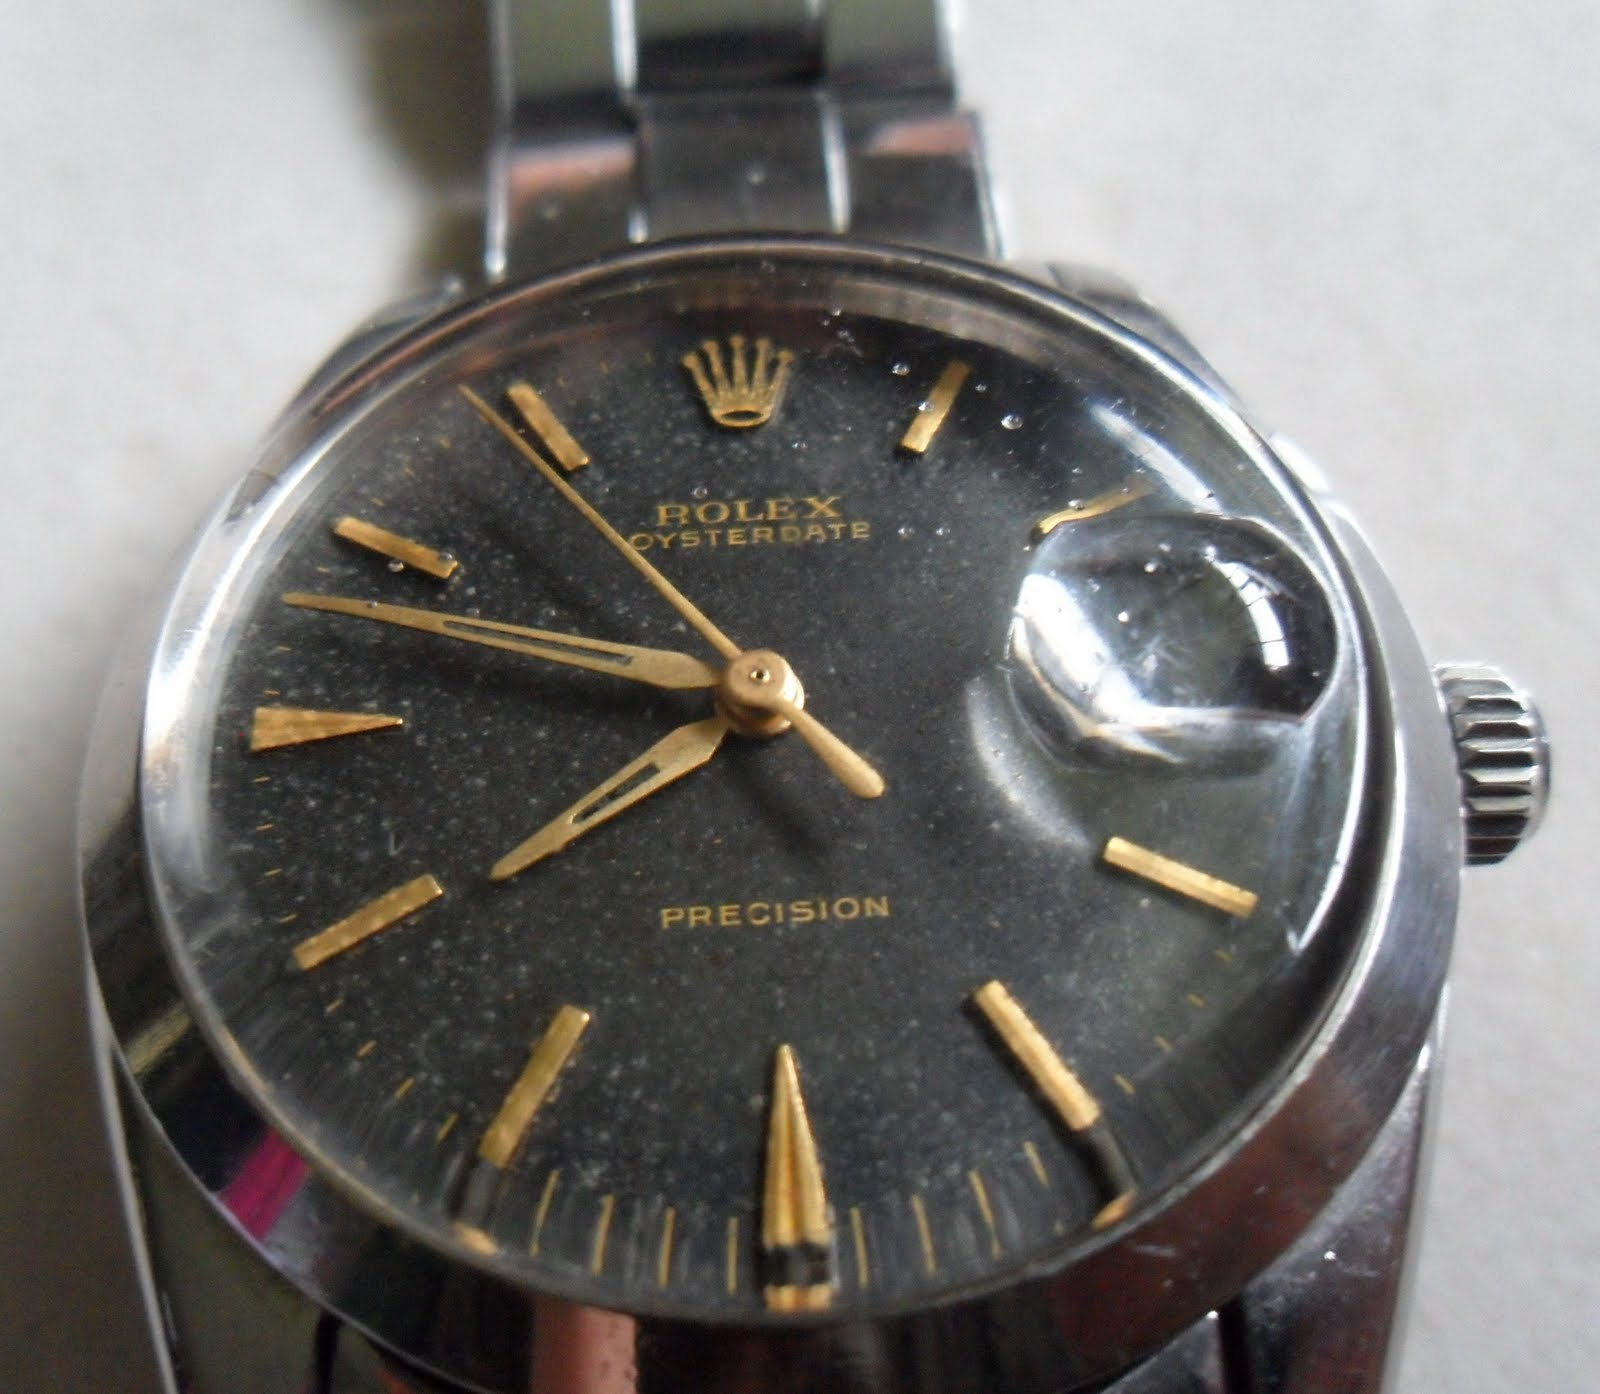 Jual Jam Rolex Gold Original Welcome To Tangan Pria Expedition 6631 Black Yellow Triple Time Precision Dial Diamond Shape Hands And Indexes Winding